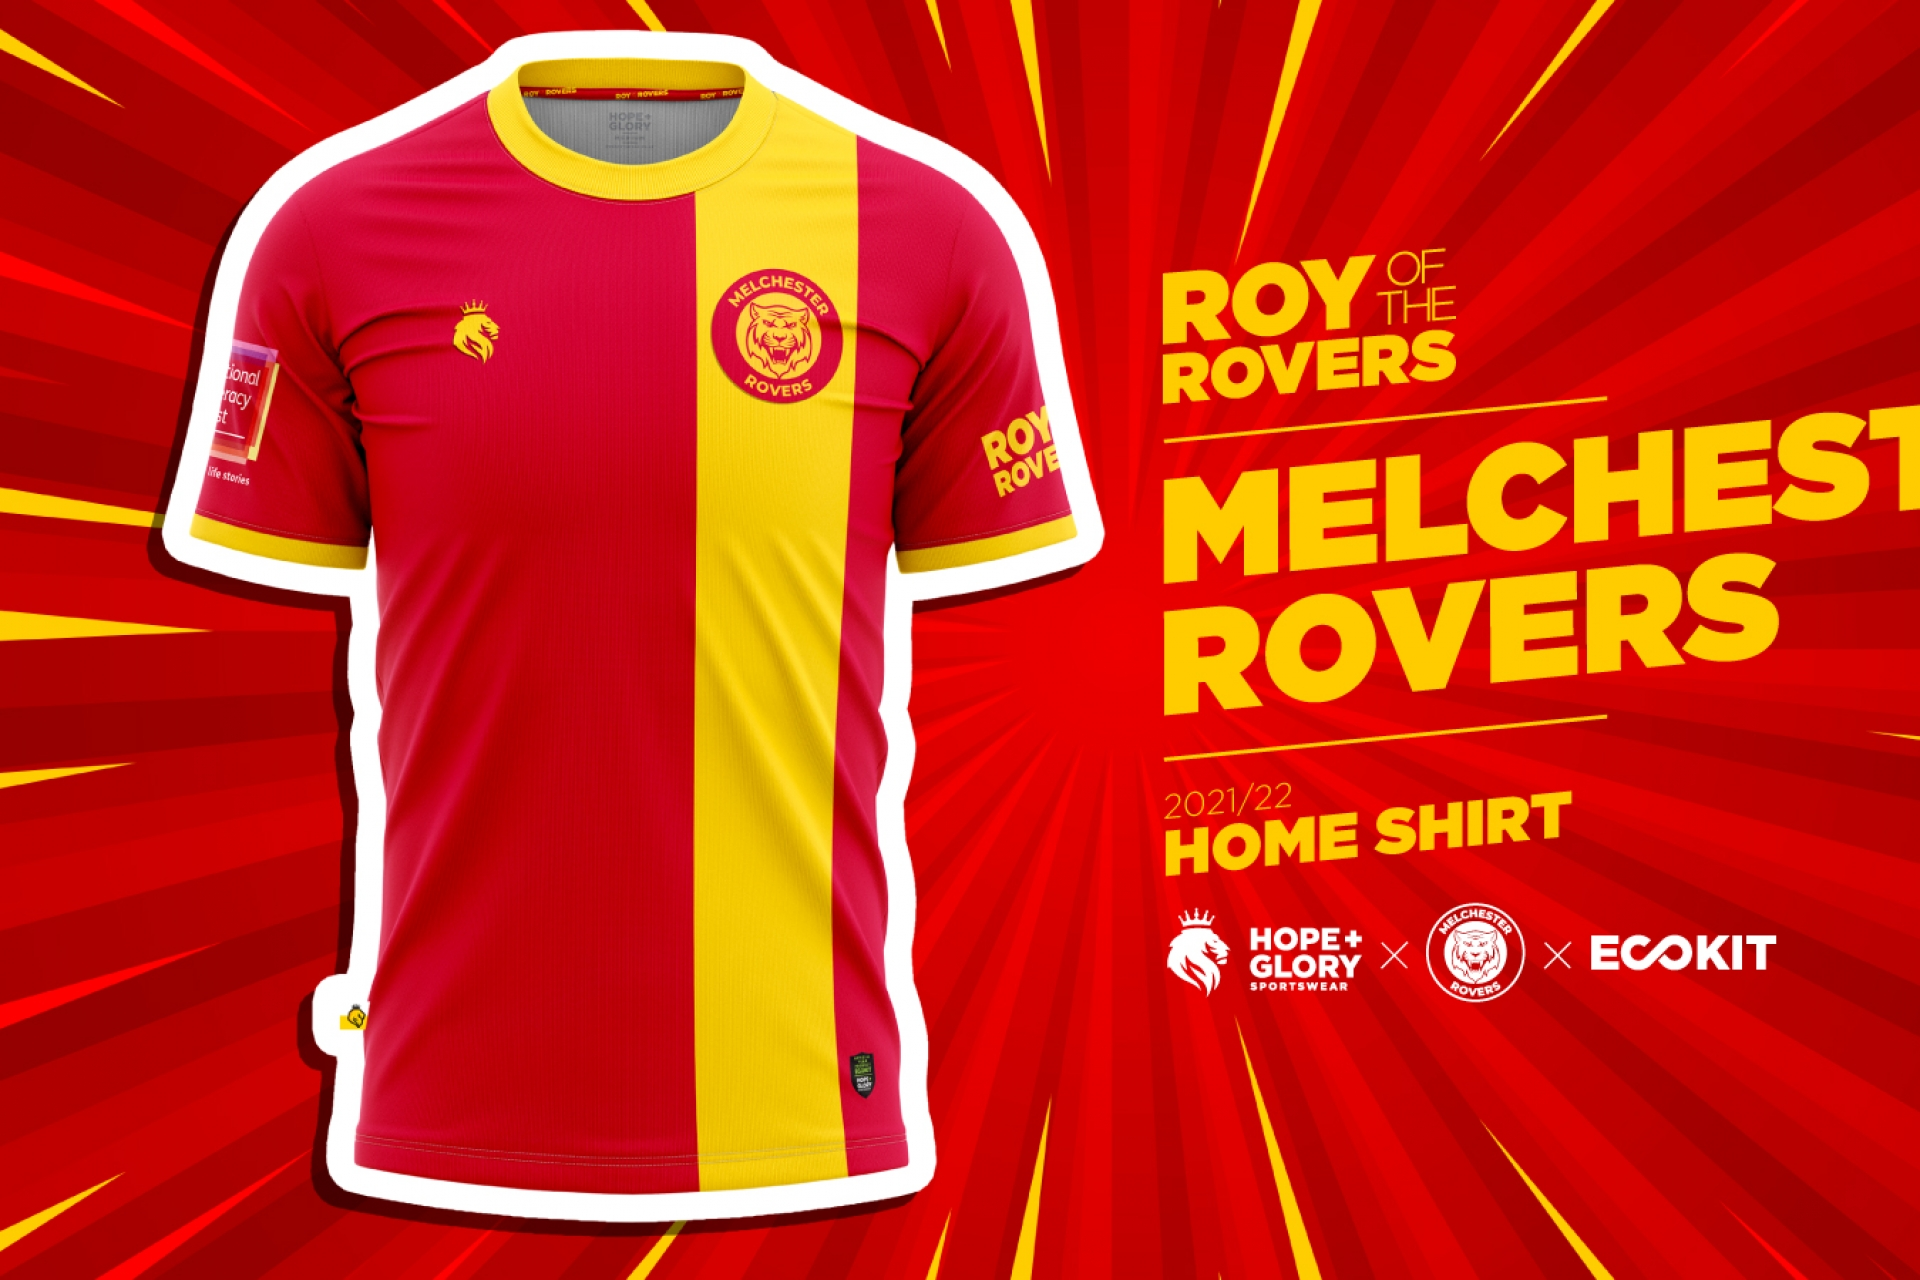 Indie Publisher Rebellion launches limited edition football shirts alongside new Roy of the Rovers book